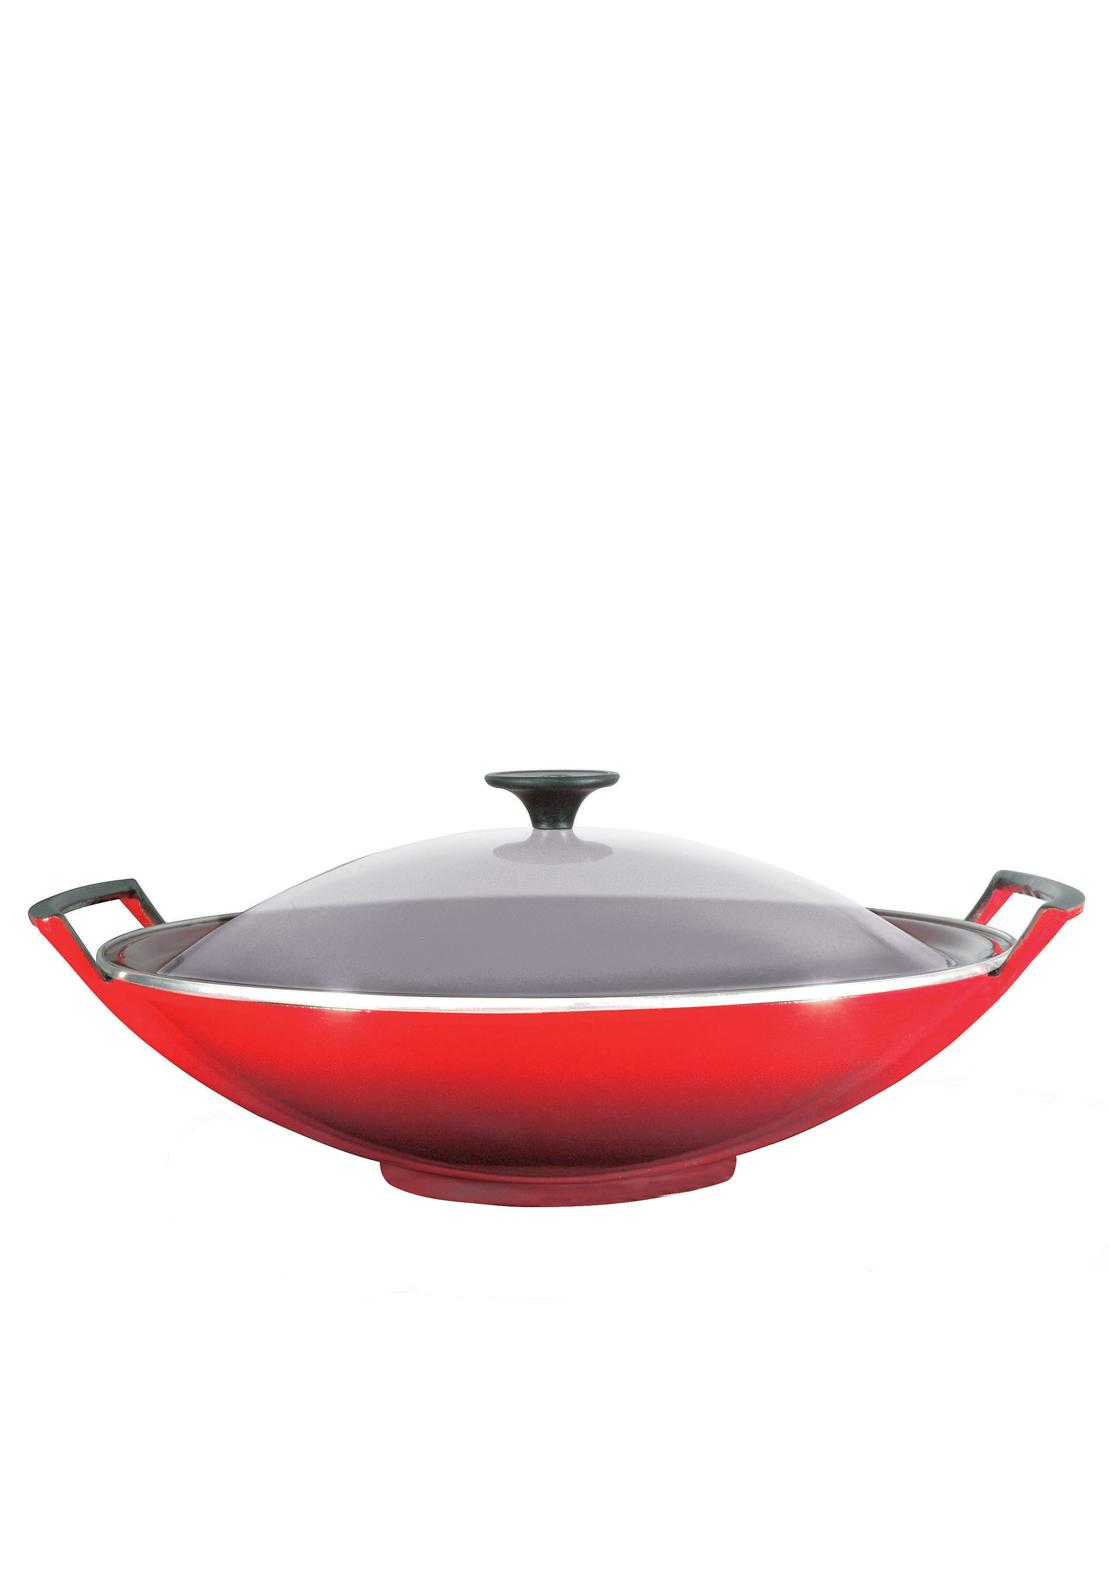 Le Creuset Cast Iron 36cm Wok and Glass Lid, Cerise